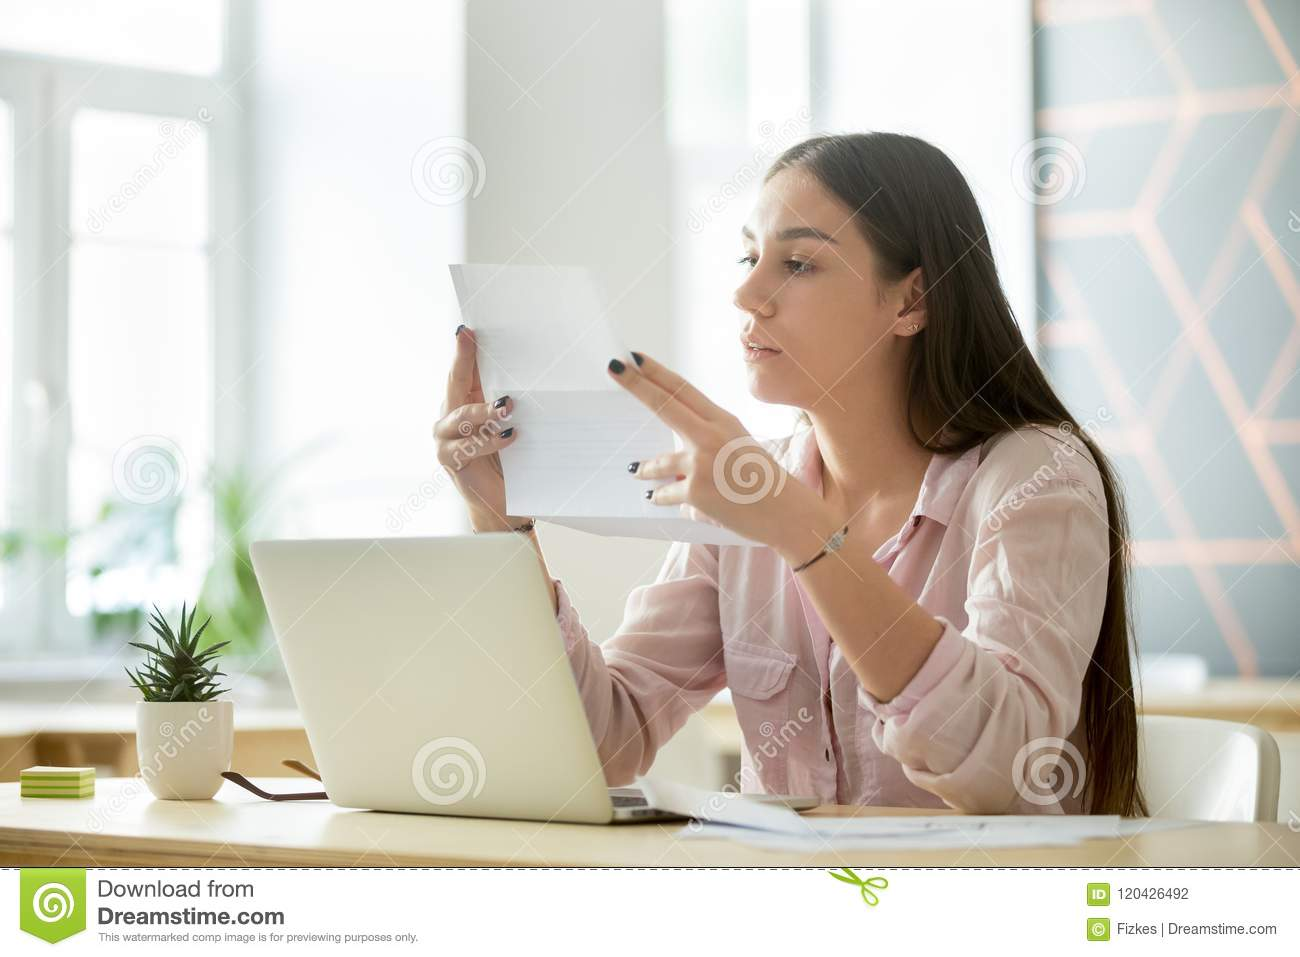 Concentrated Female Employee Reading Business Contract In Office